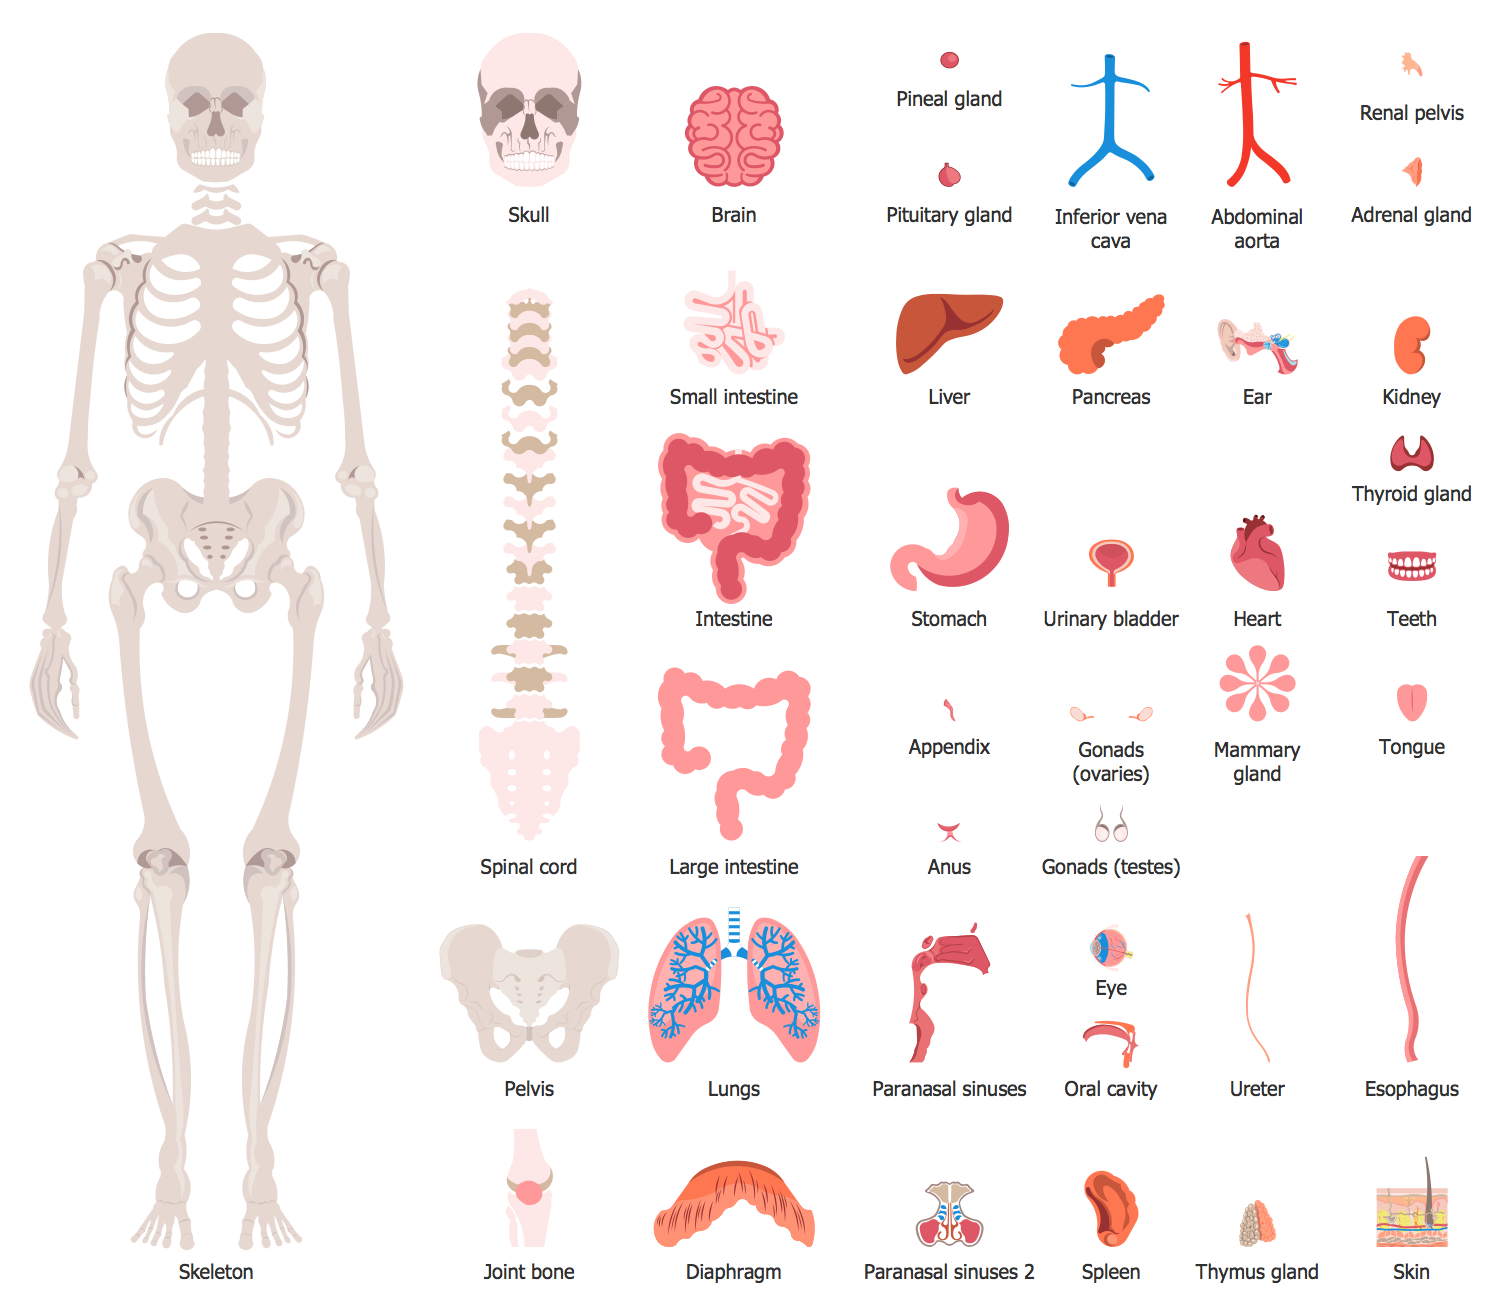 Health Human Anatomy Design Elements Human Organs